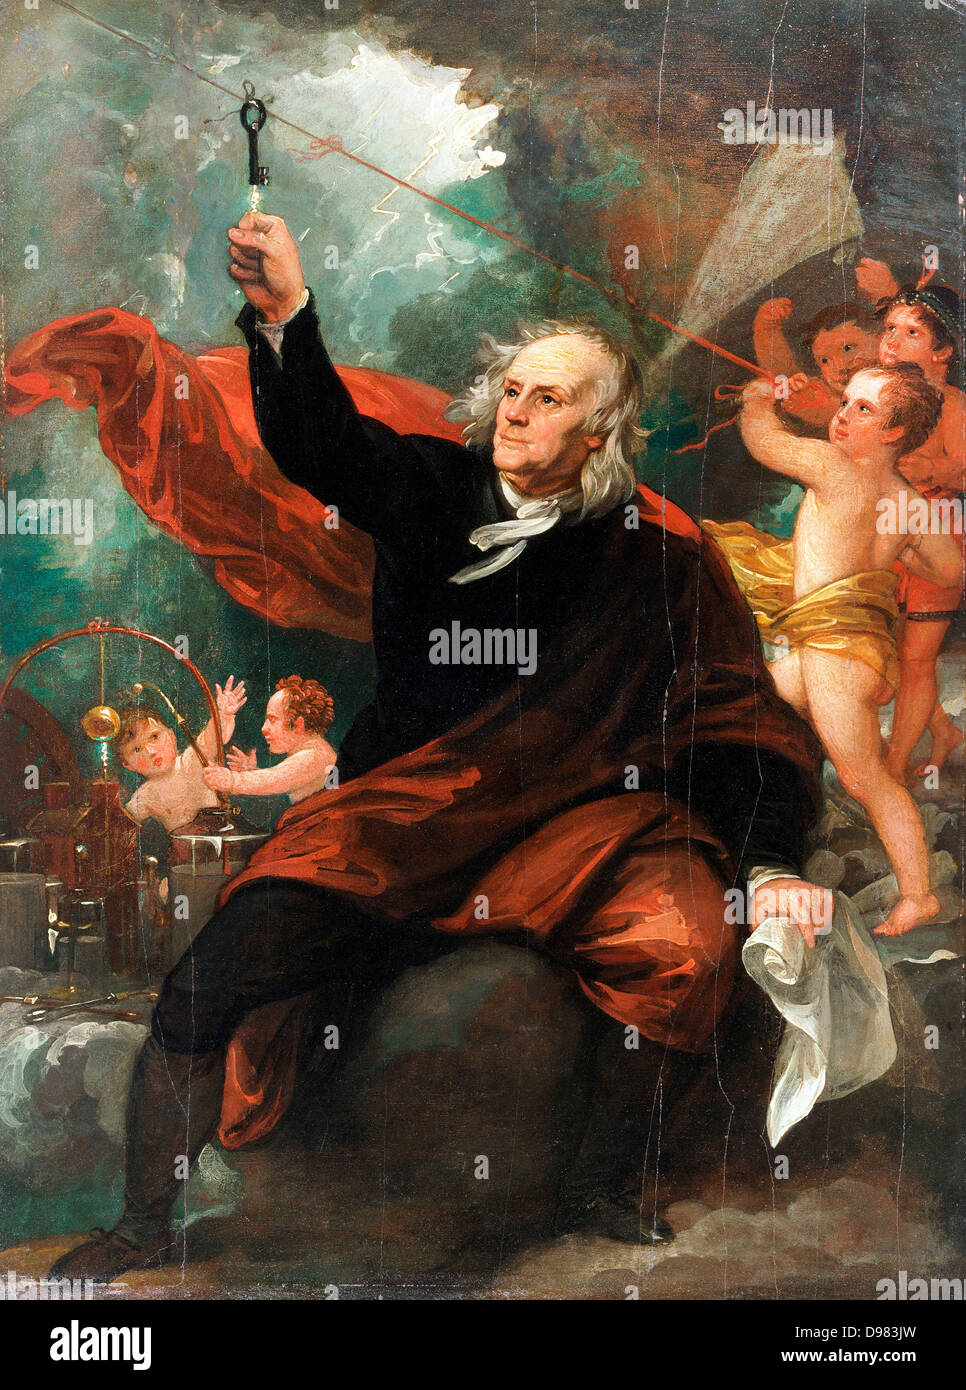 Benjamin West, Benjamin Franklin Drawing Electricity from the Sky. Circa 1816. Oil on canvas. Philadelphia Museum - Stock Image